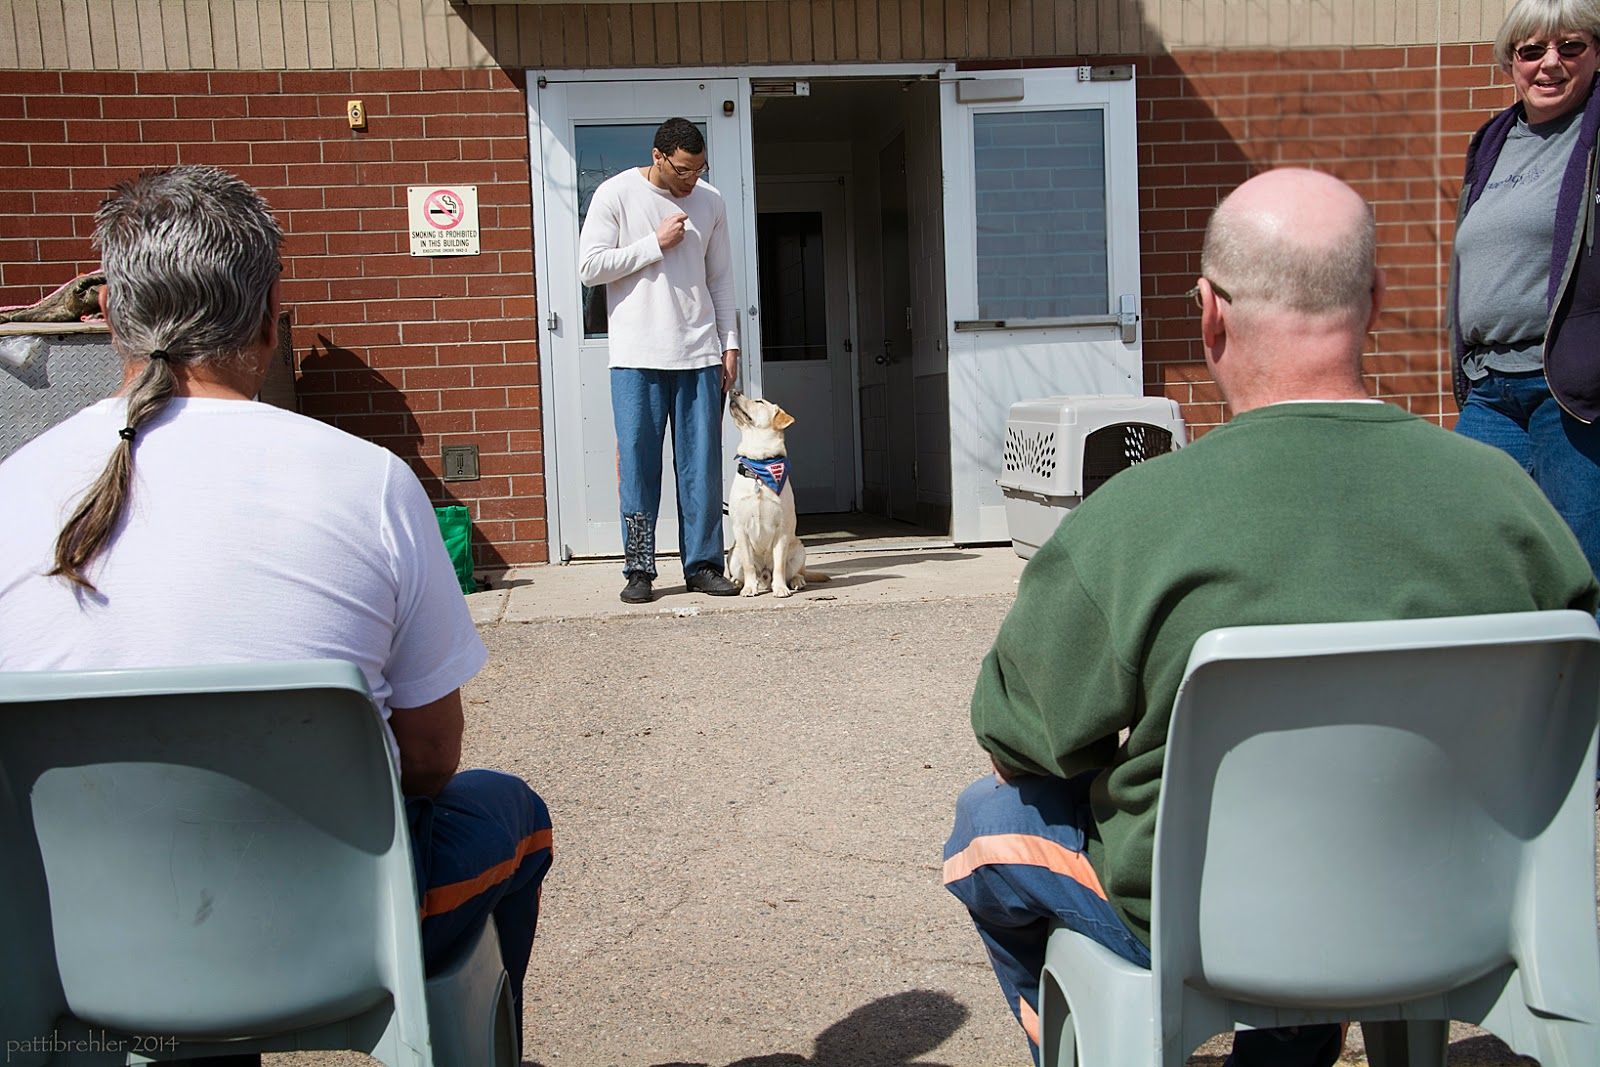 A tall, african american man is standing in the distance in the middle of the photo, near a set of double doors, one of which is open. He is wearing the prison blue pants and a long sleeved white t-shirt. He is looking down at a yellow lab which is sitting on his left side looking back at him. The puppy is wearing the blue Future Leader Dog bandana. The man's right hand is in a fist at his chest and his left hand hanging at his side is holding the leash. In the foreground are two men sitting in light blue plastic chairs, facing hte first man. The man on the left is wearing a white t-shirt and has a ponytail, his hair is grey. The man on the right is wearing a green sweatshirt and is bald. There is a woman standing far on the right, half out of view. She is wearing dark glases, blue jeans, a grey t-shirt and purple hoodie that is unzipped. It is very sunny out.